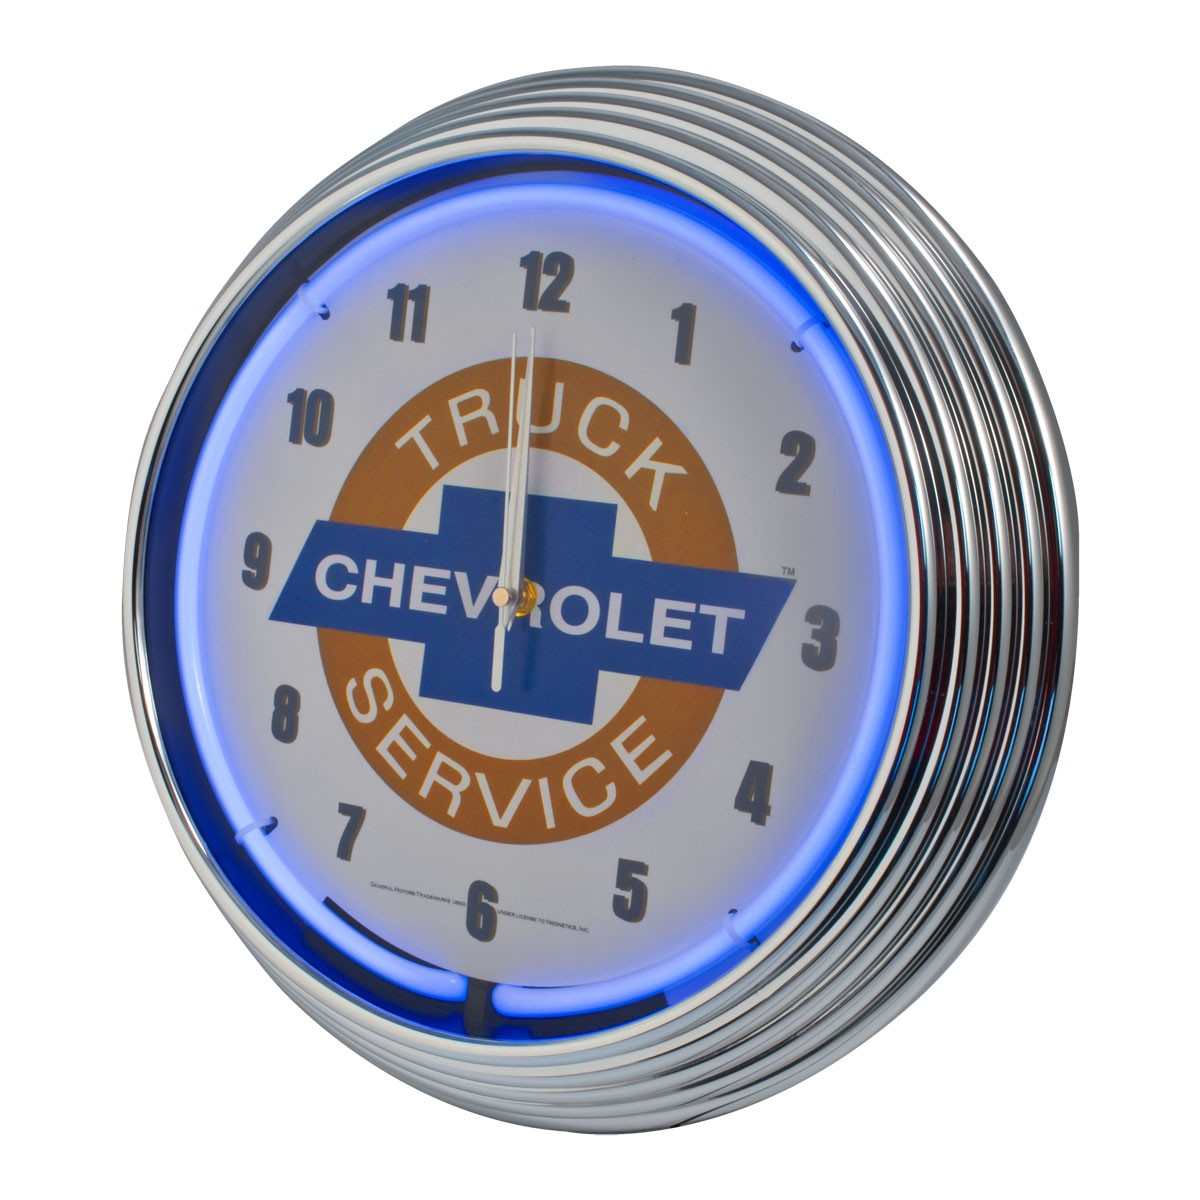 Chevrolet Chevy Trucks Service Bowtie Blue Illuminated Light Up Neon Clock w/ Chrome Trim